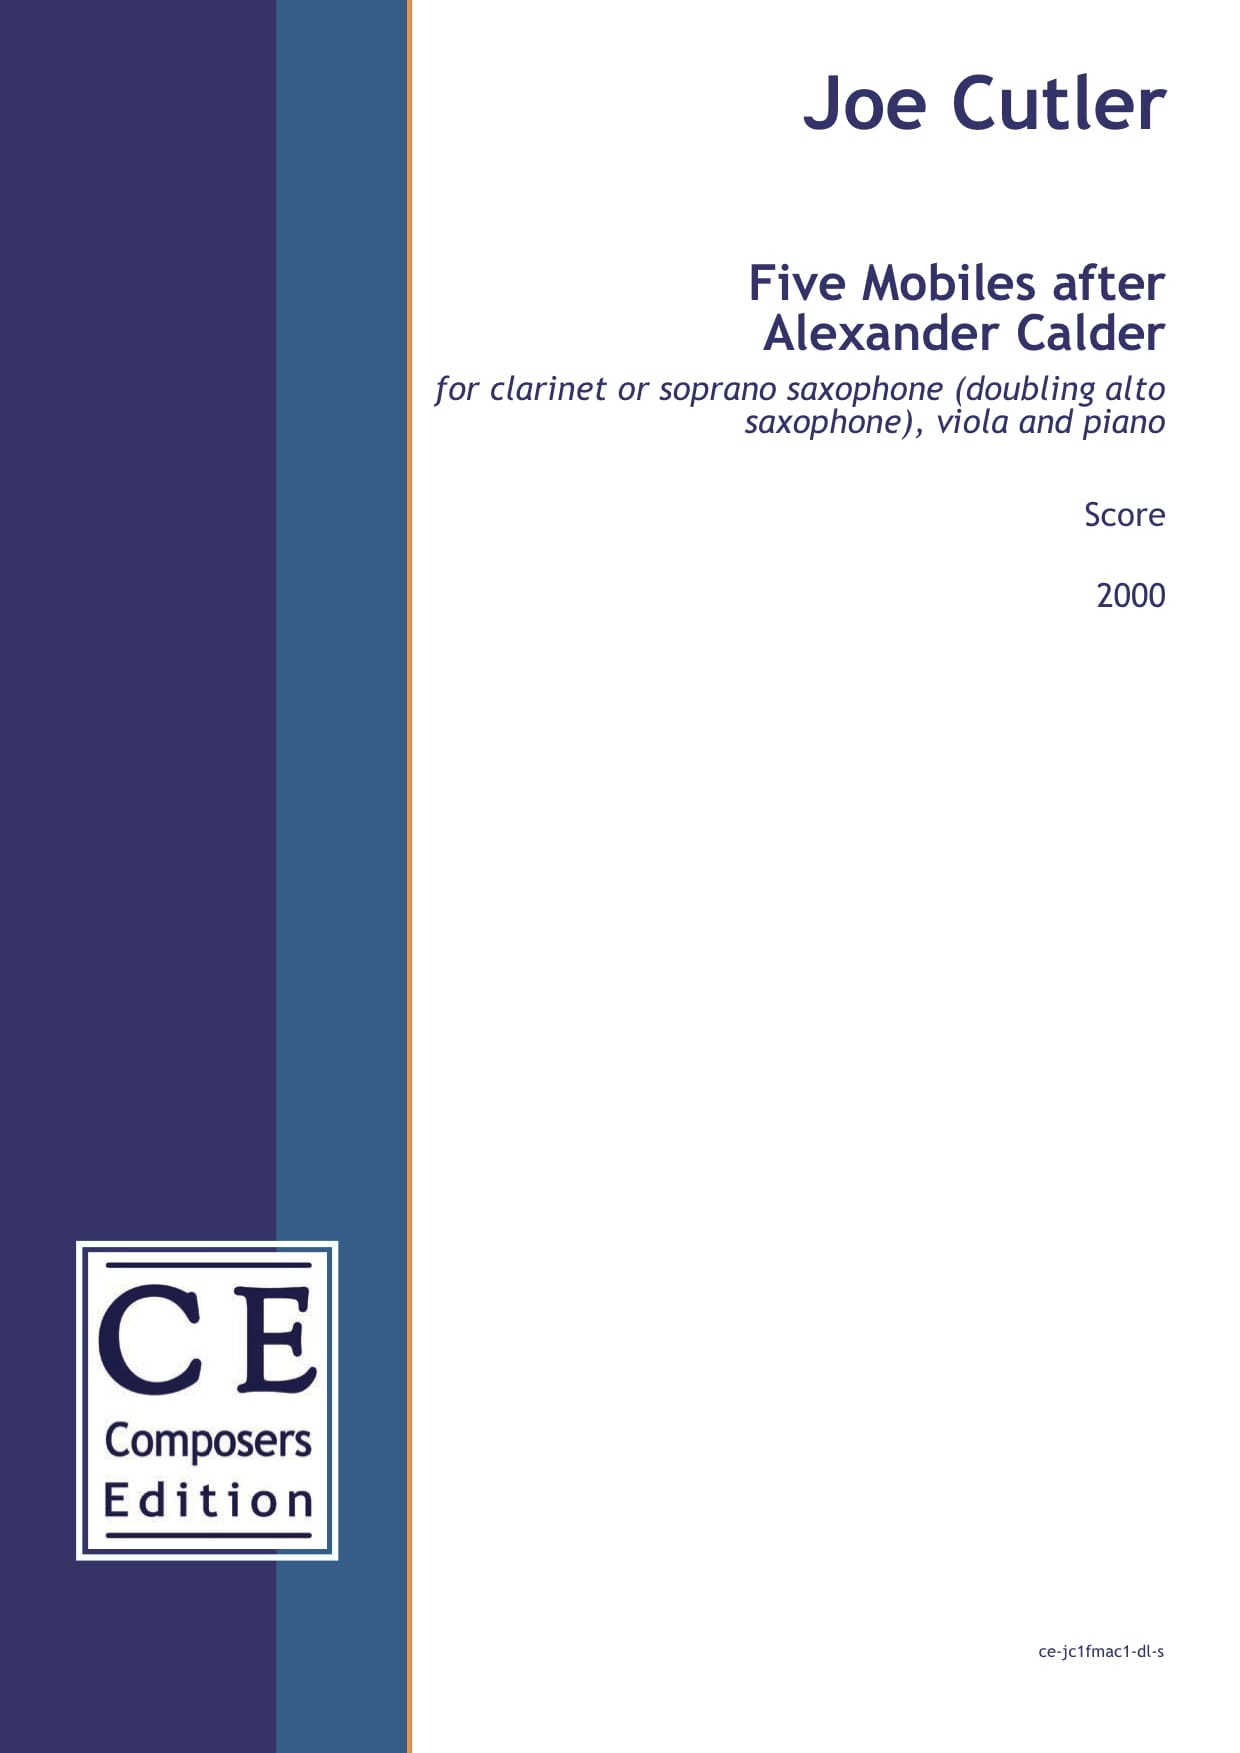 Joe Cutler: Five Mobiles after Alexander Calder for clarinet or soprano saxophone (doubling alto saxophone), viola and piano